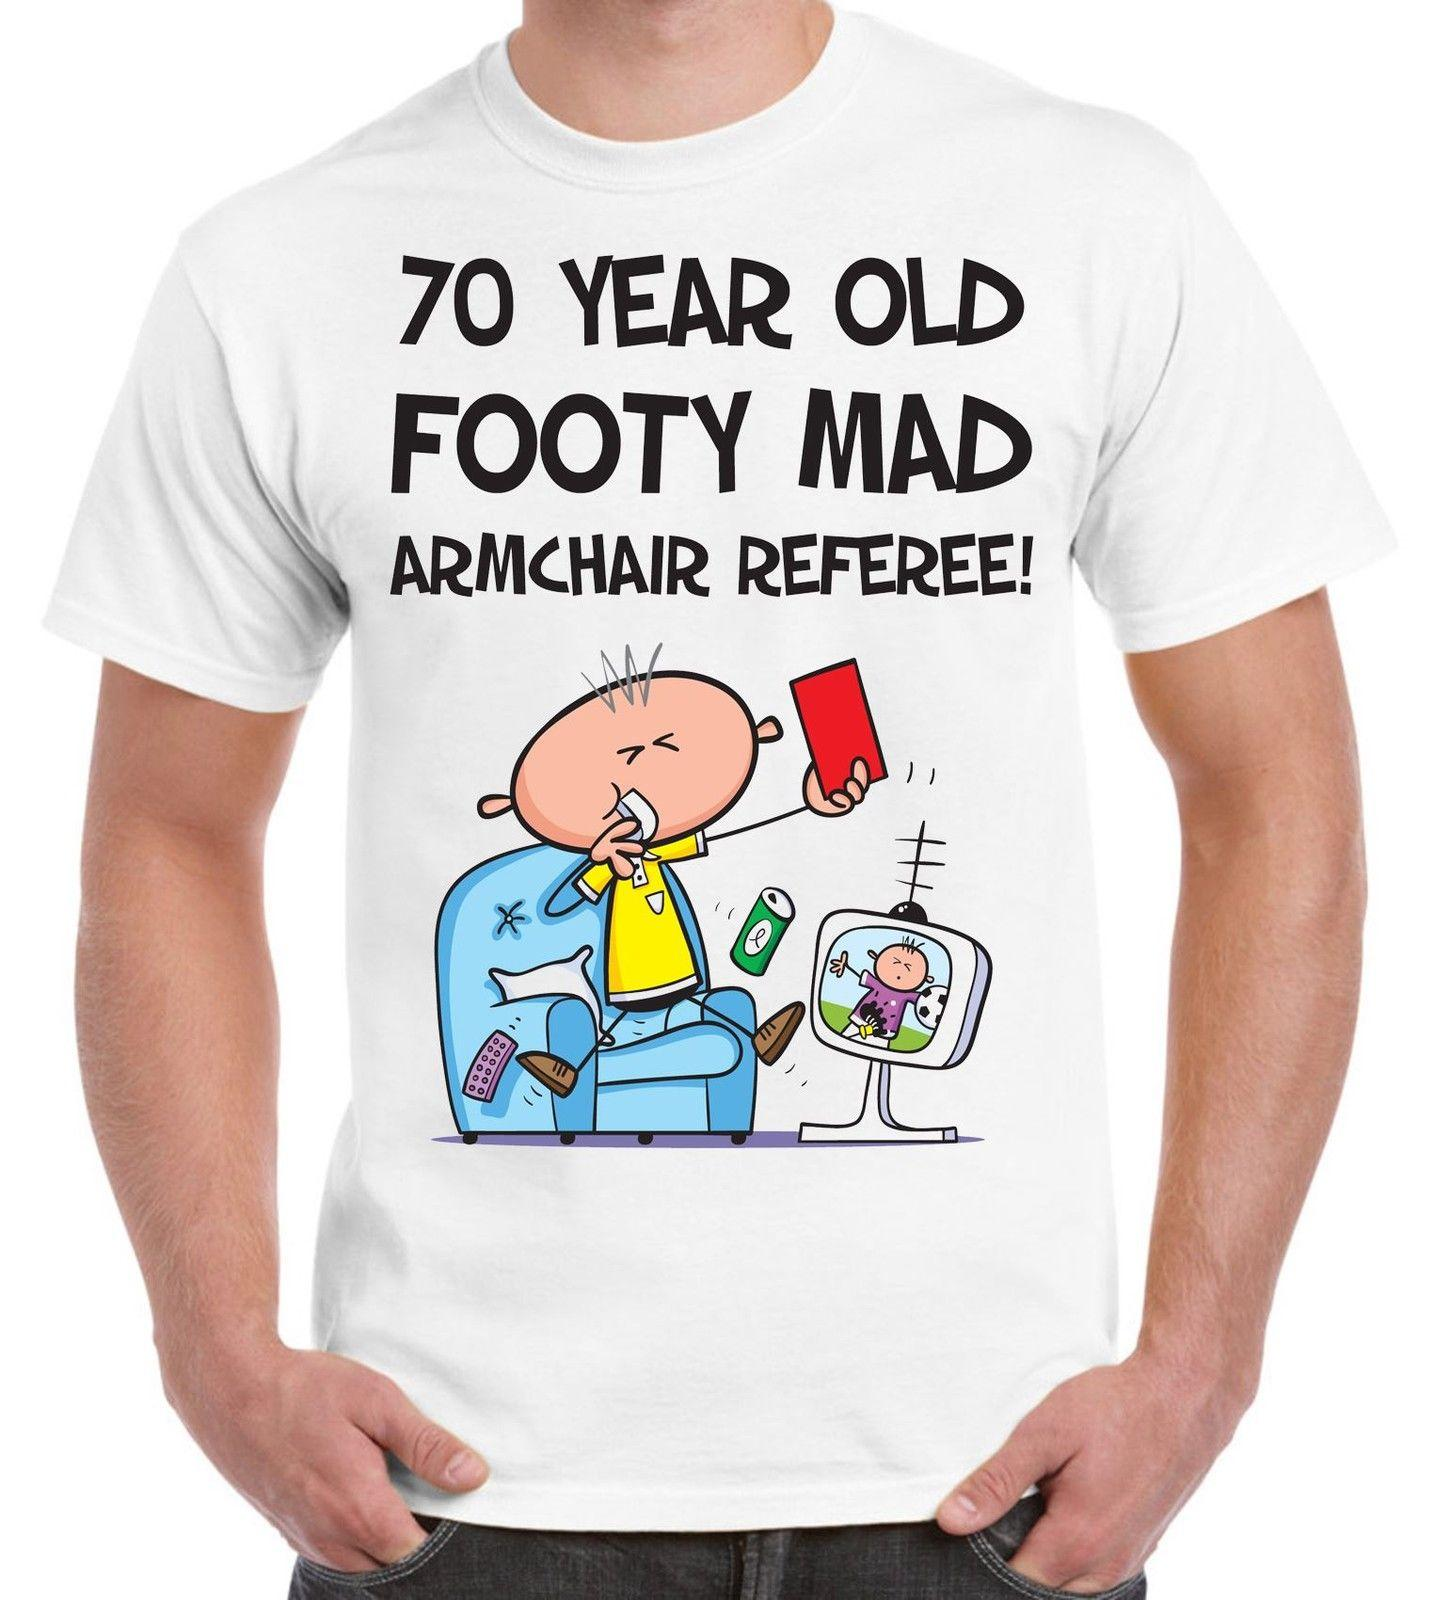 Footy Mad Armchair Referee MenS 70th Birthday Present T Shirt Gift